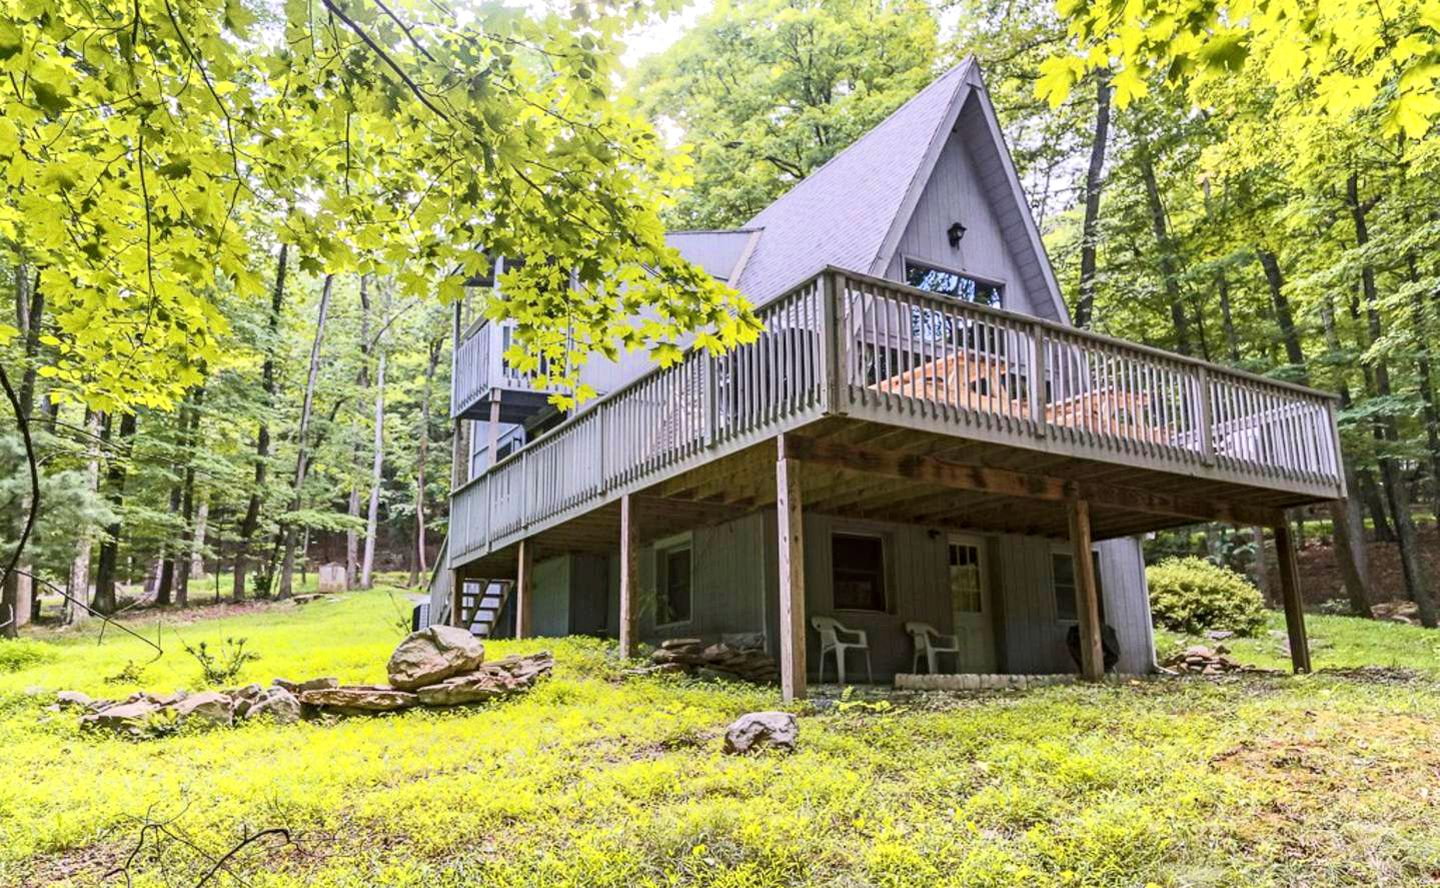 Secluded Cabin Getaway Near Cacapon State Park In Berkeley Springs West Virginia